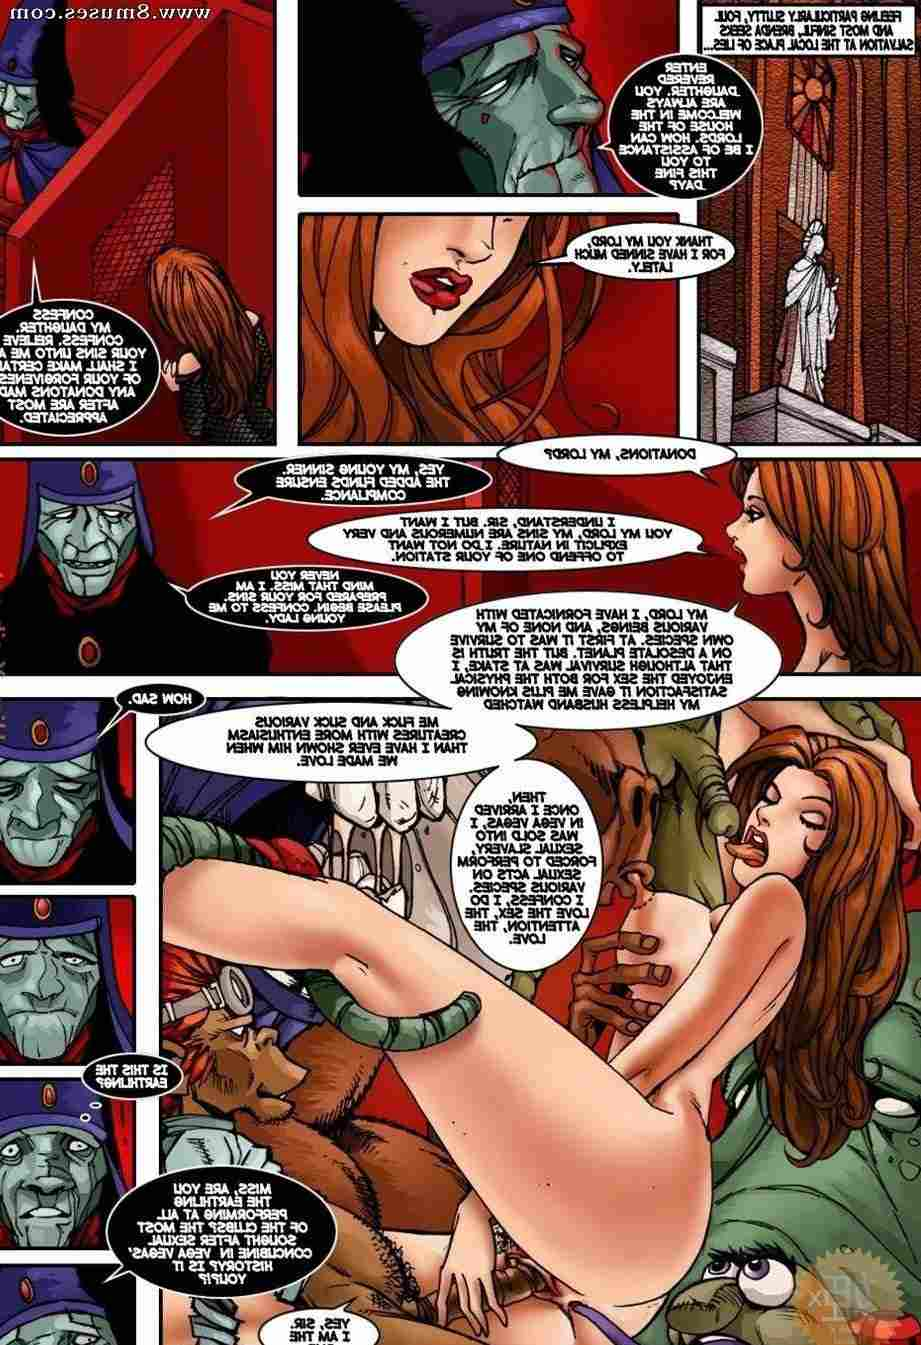 Central-Comics/Space-Babe-Central/Alien-Love-Toy Alien_Love_Toy__8muses_-_Sex_and_Porn_Comics_11.jpg